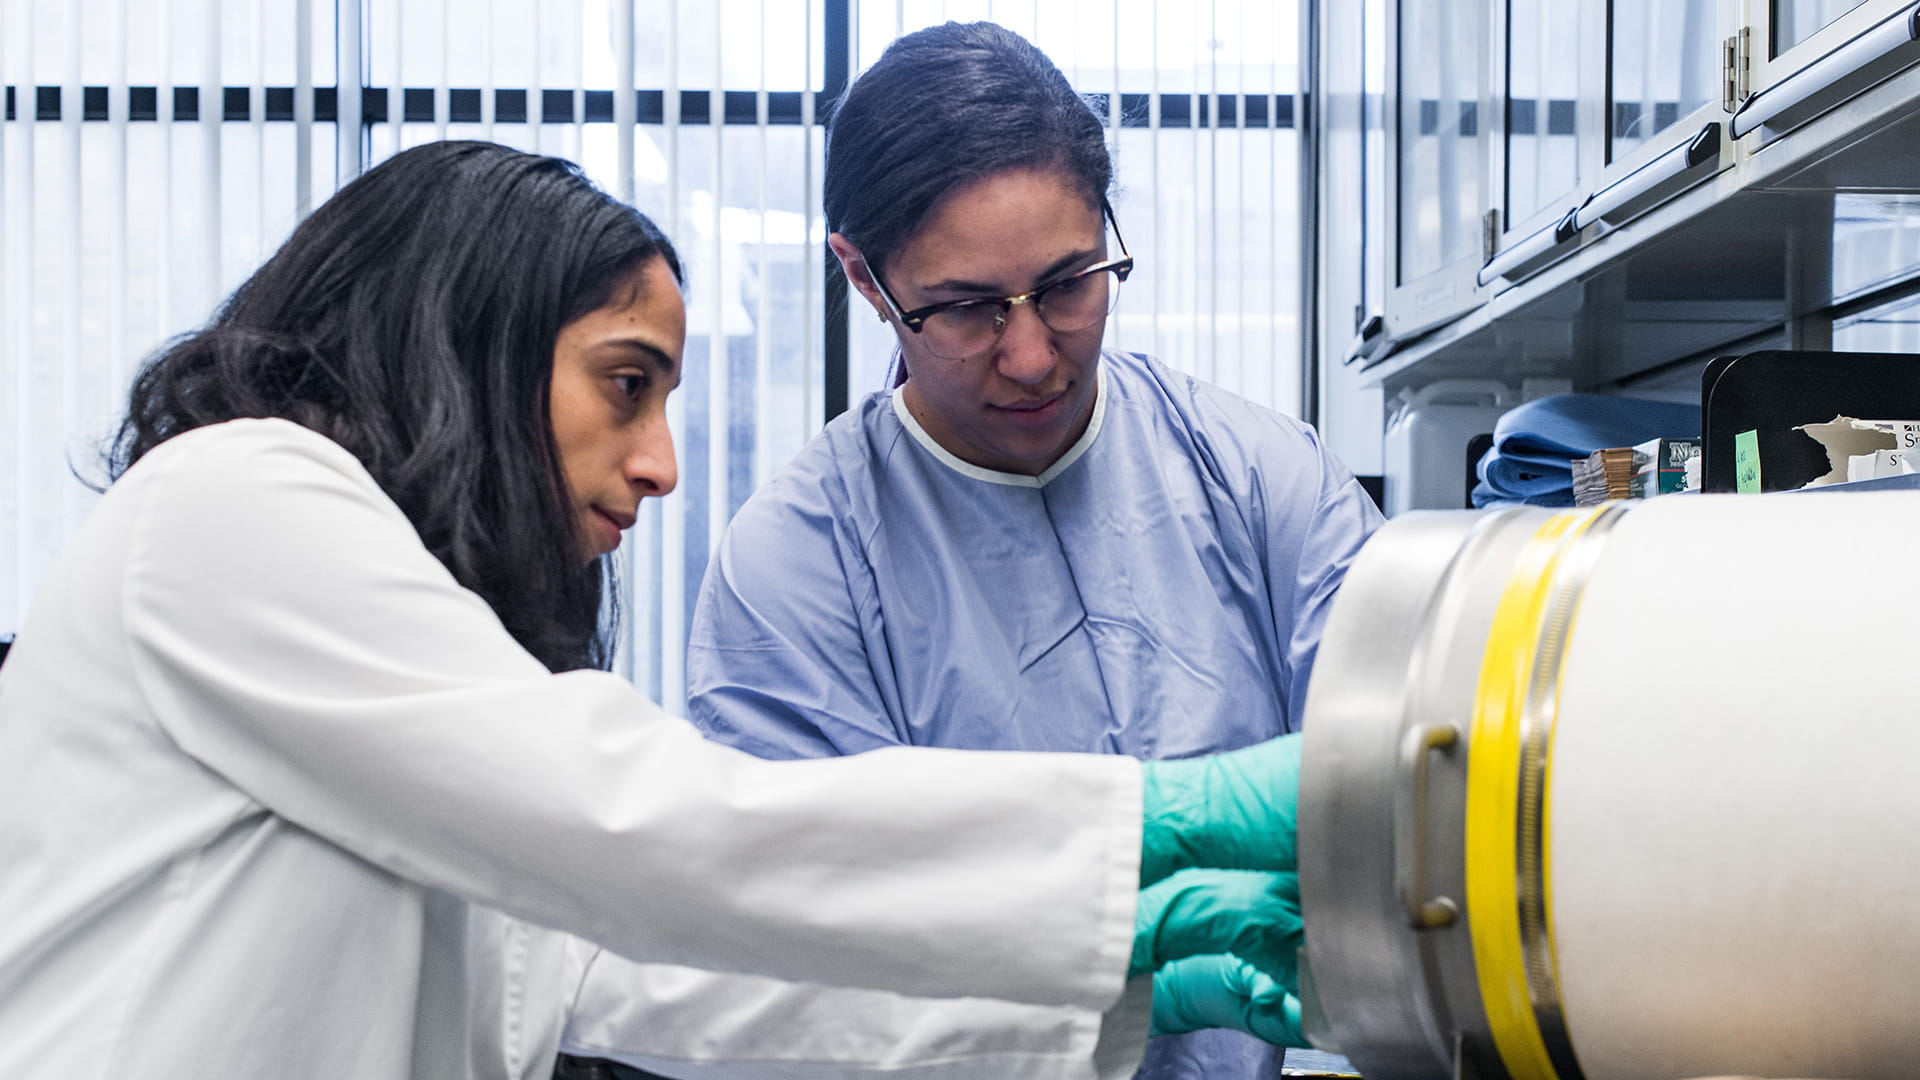 An image of Theresa Alenghat, VMD, PhD, and Jordan Whitt in the lab.